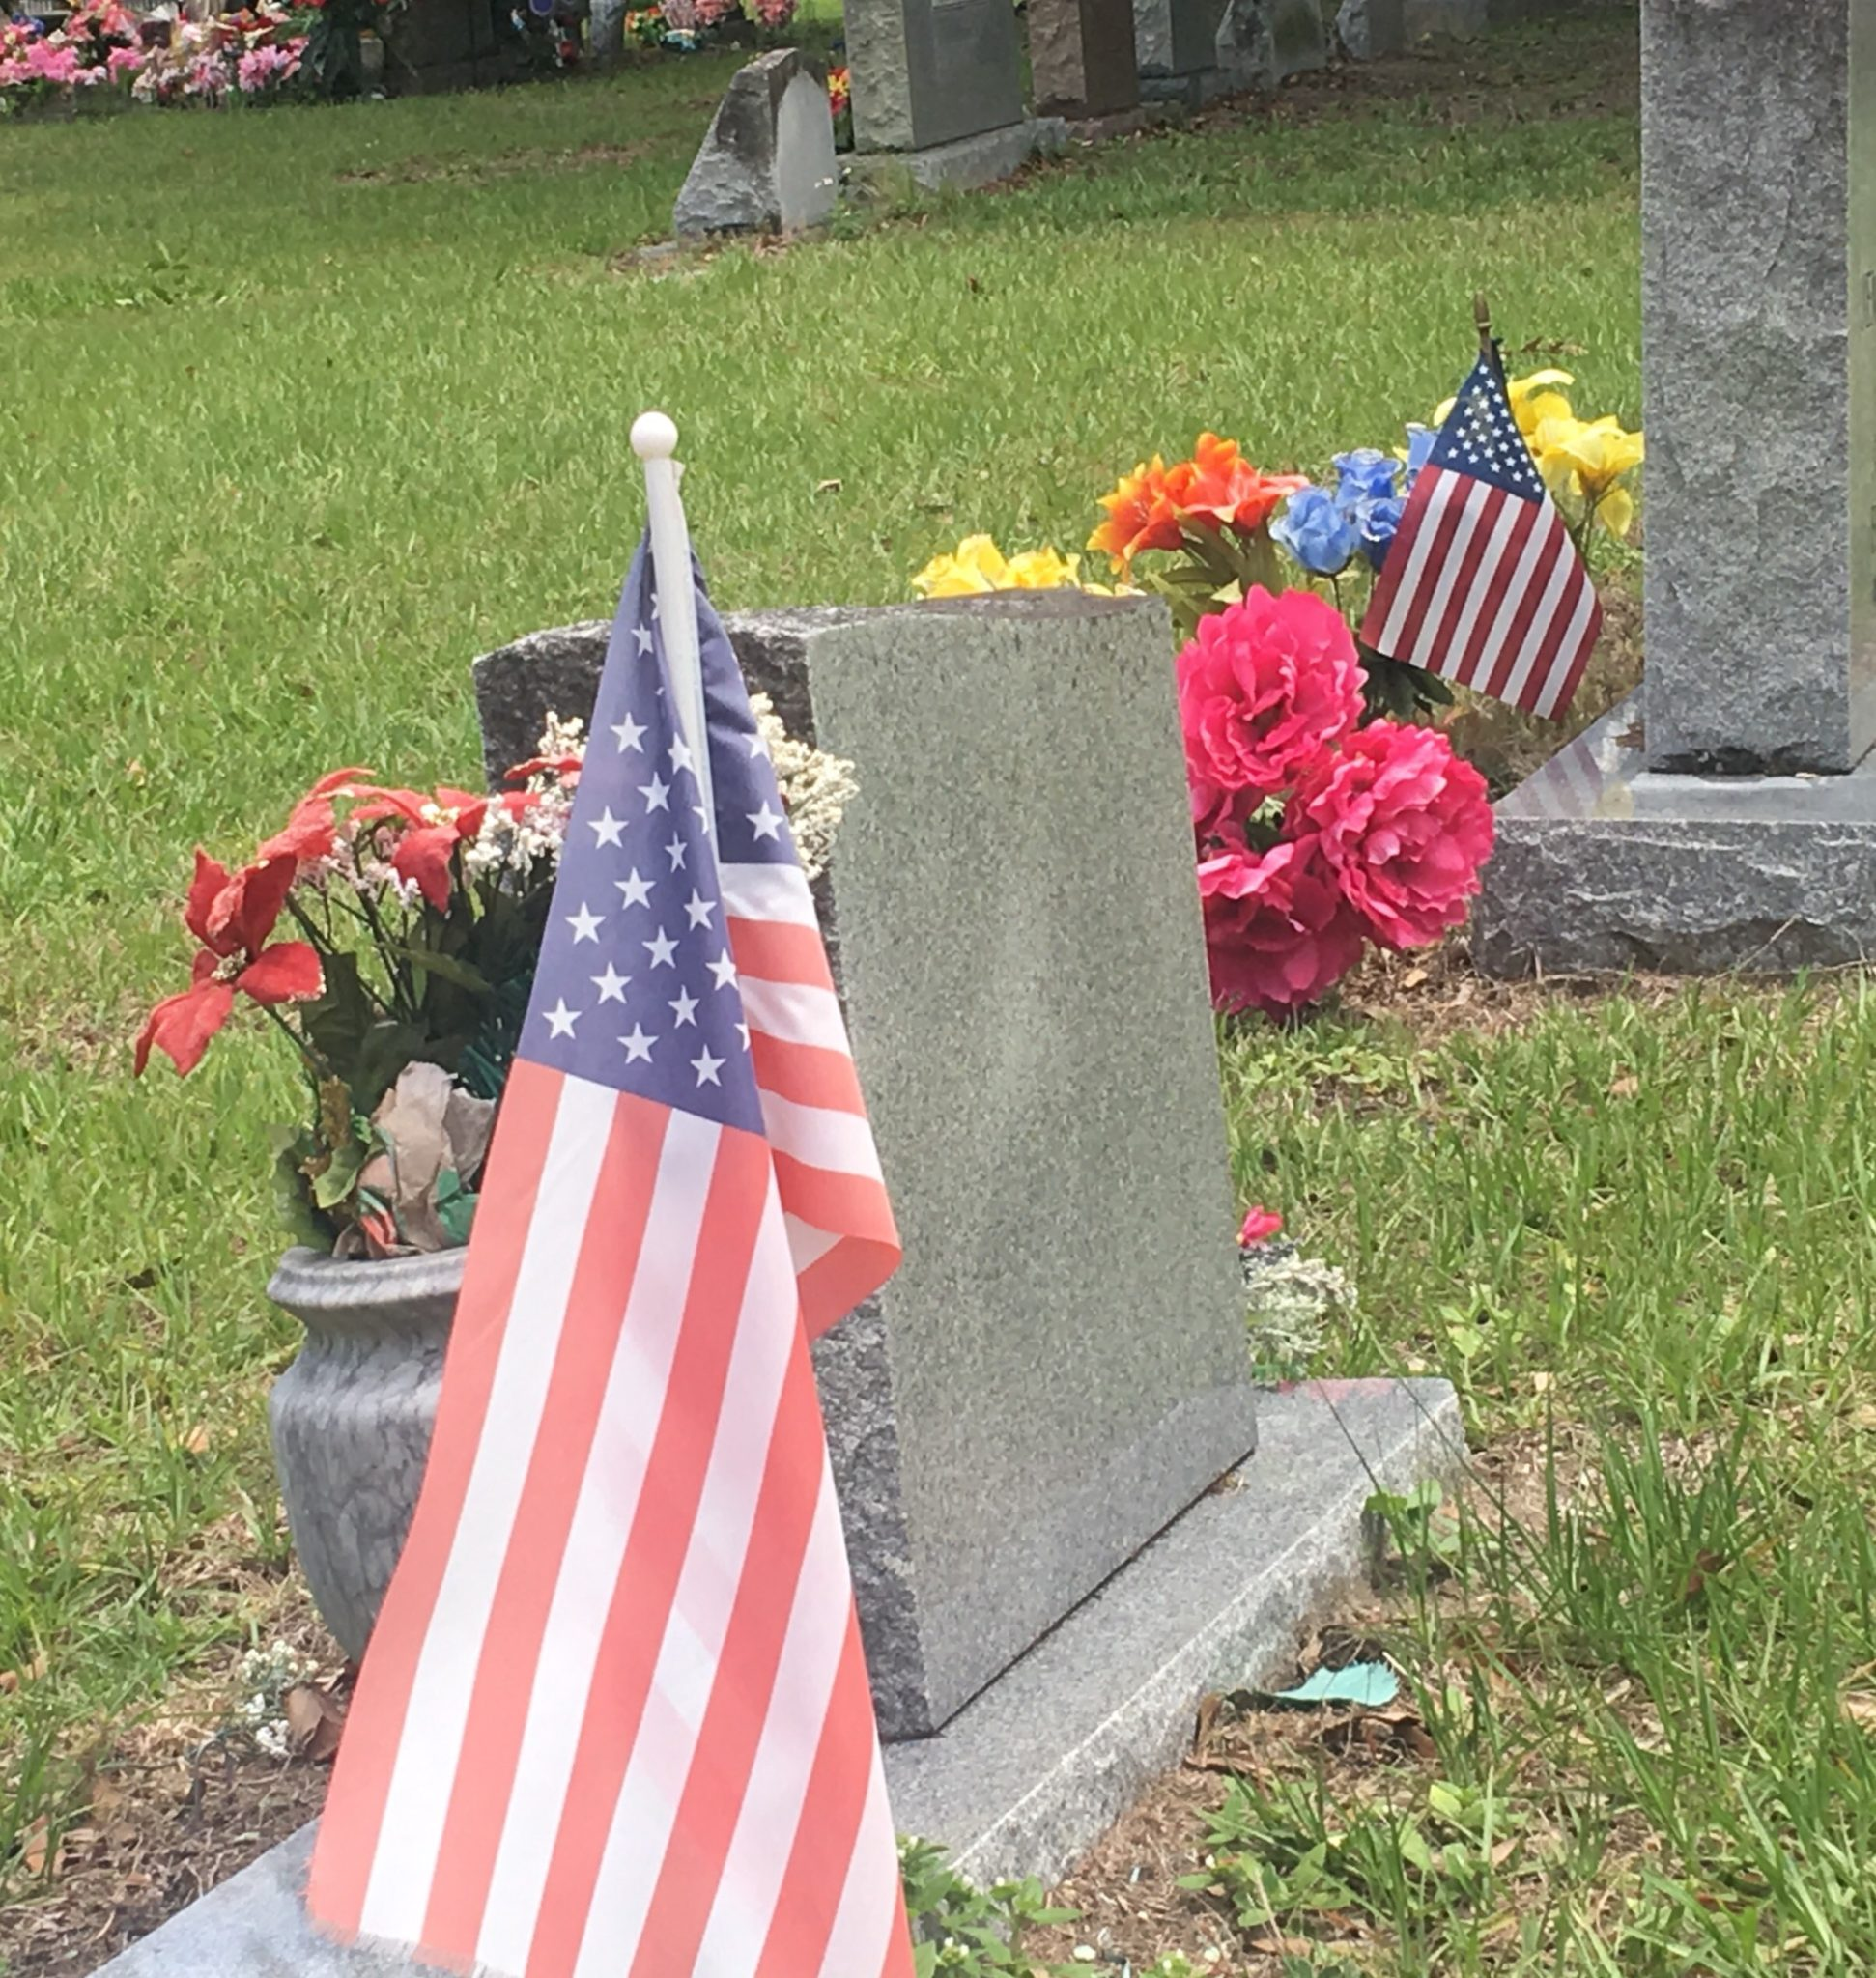 Apopka will honor fallen military heroes with Memorial Day service